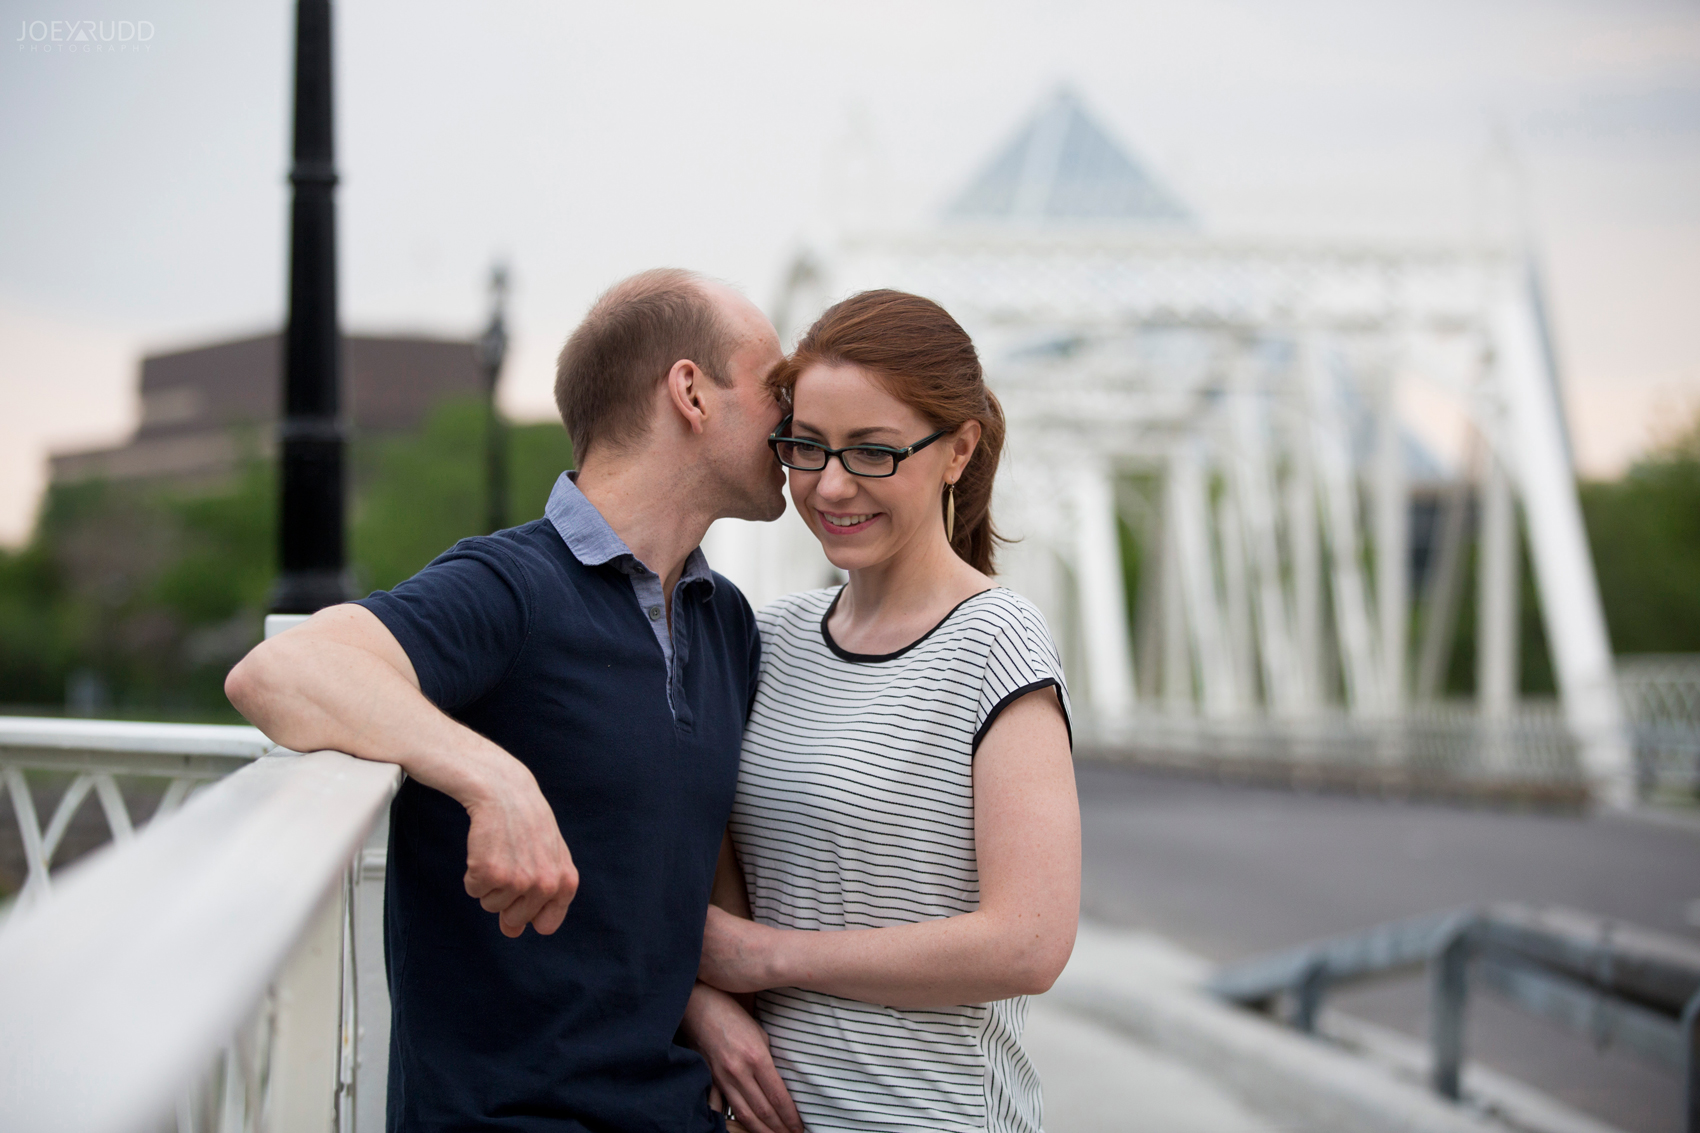 Rideau Hall Engagement, Joey Rudd Photography, Ottawa, Ottawa Engagement, Ottawa Engagement Photos, Fountain, Engaged Ottawa, Wedding Photographer, Wedding Photography, Rideau Park, Photo Locations Ottawa, Places for Photos in Ottawa, bridge